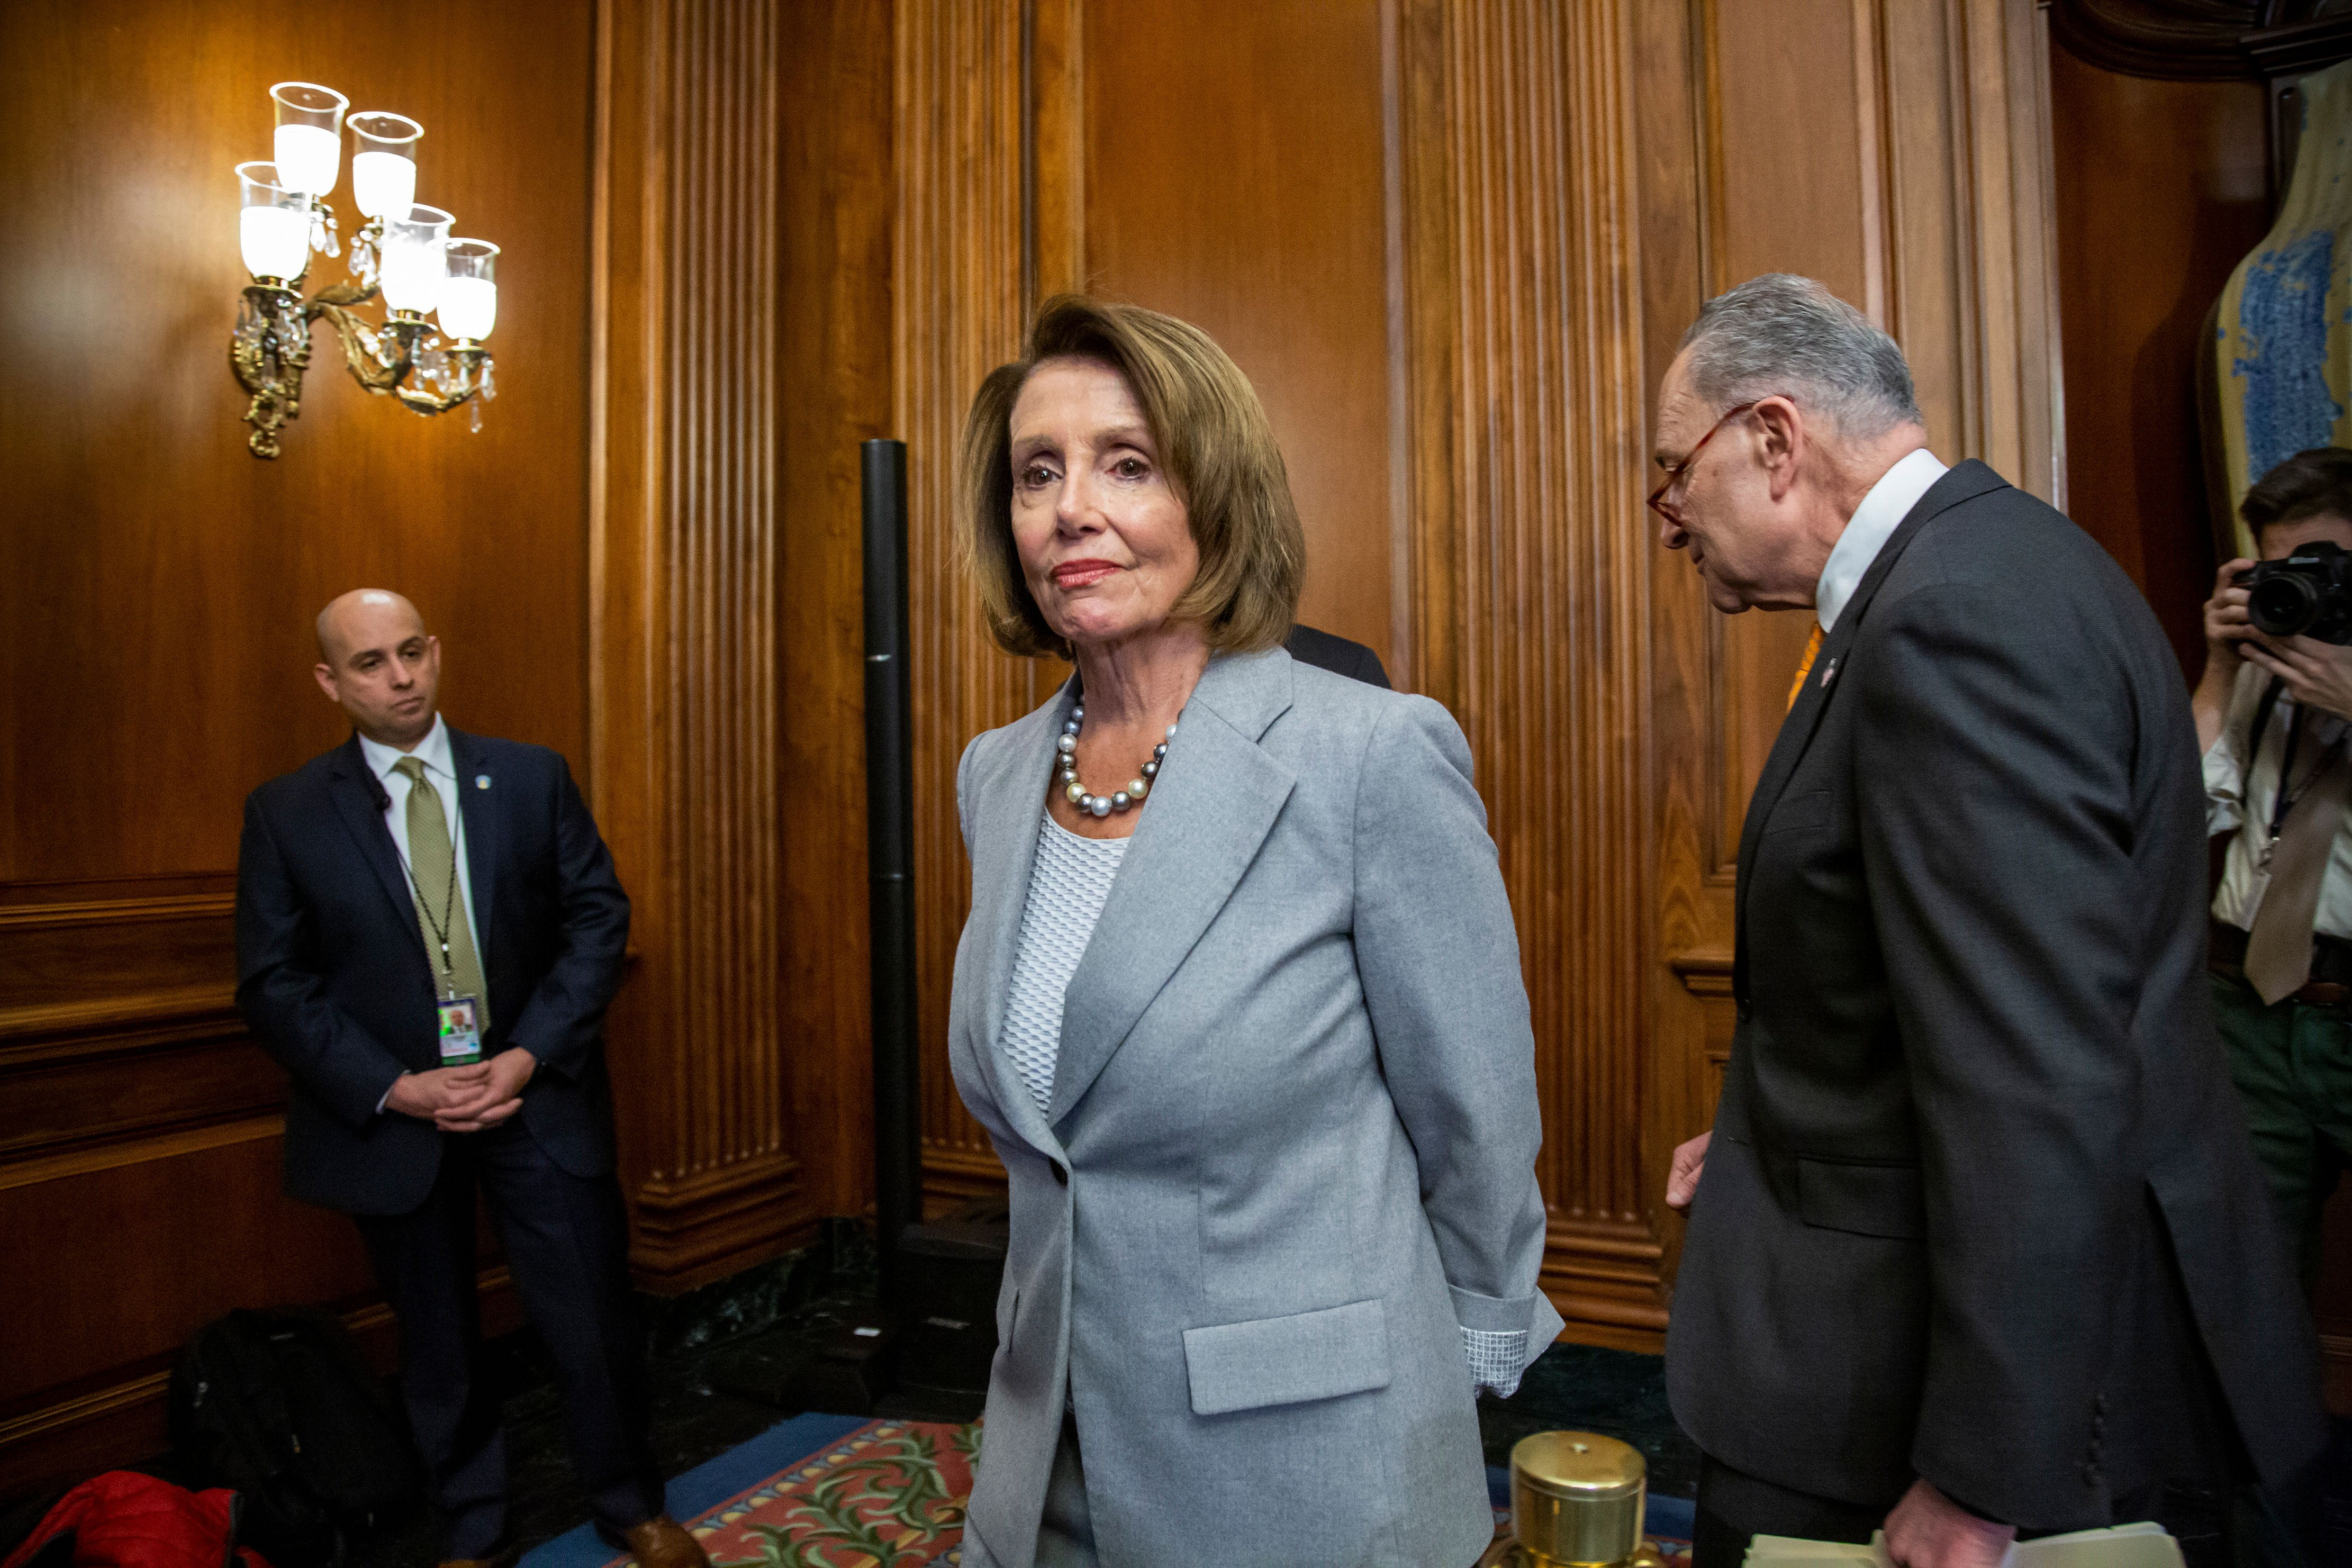 Speaker of the House Nancy Pelosi, D-Calif., and Senate Minority Leader Chuck Schumer, D-N.Y., right, leave an event with furloughed federal workers amid the partial government shutdown, on Capitol Hill in Washington, Wednesday, Jan. 9, 2019. Top Democrats say President Donald Trump walked out of a meeting with congressional leaders as talks to end the shutdown remain at an impasse. (AP Photo/J. Scott Applewhite)